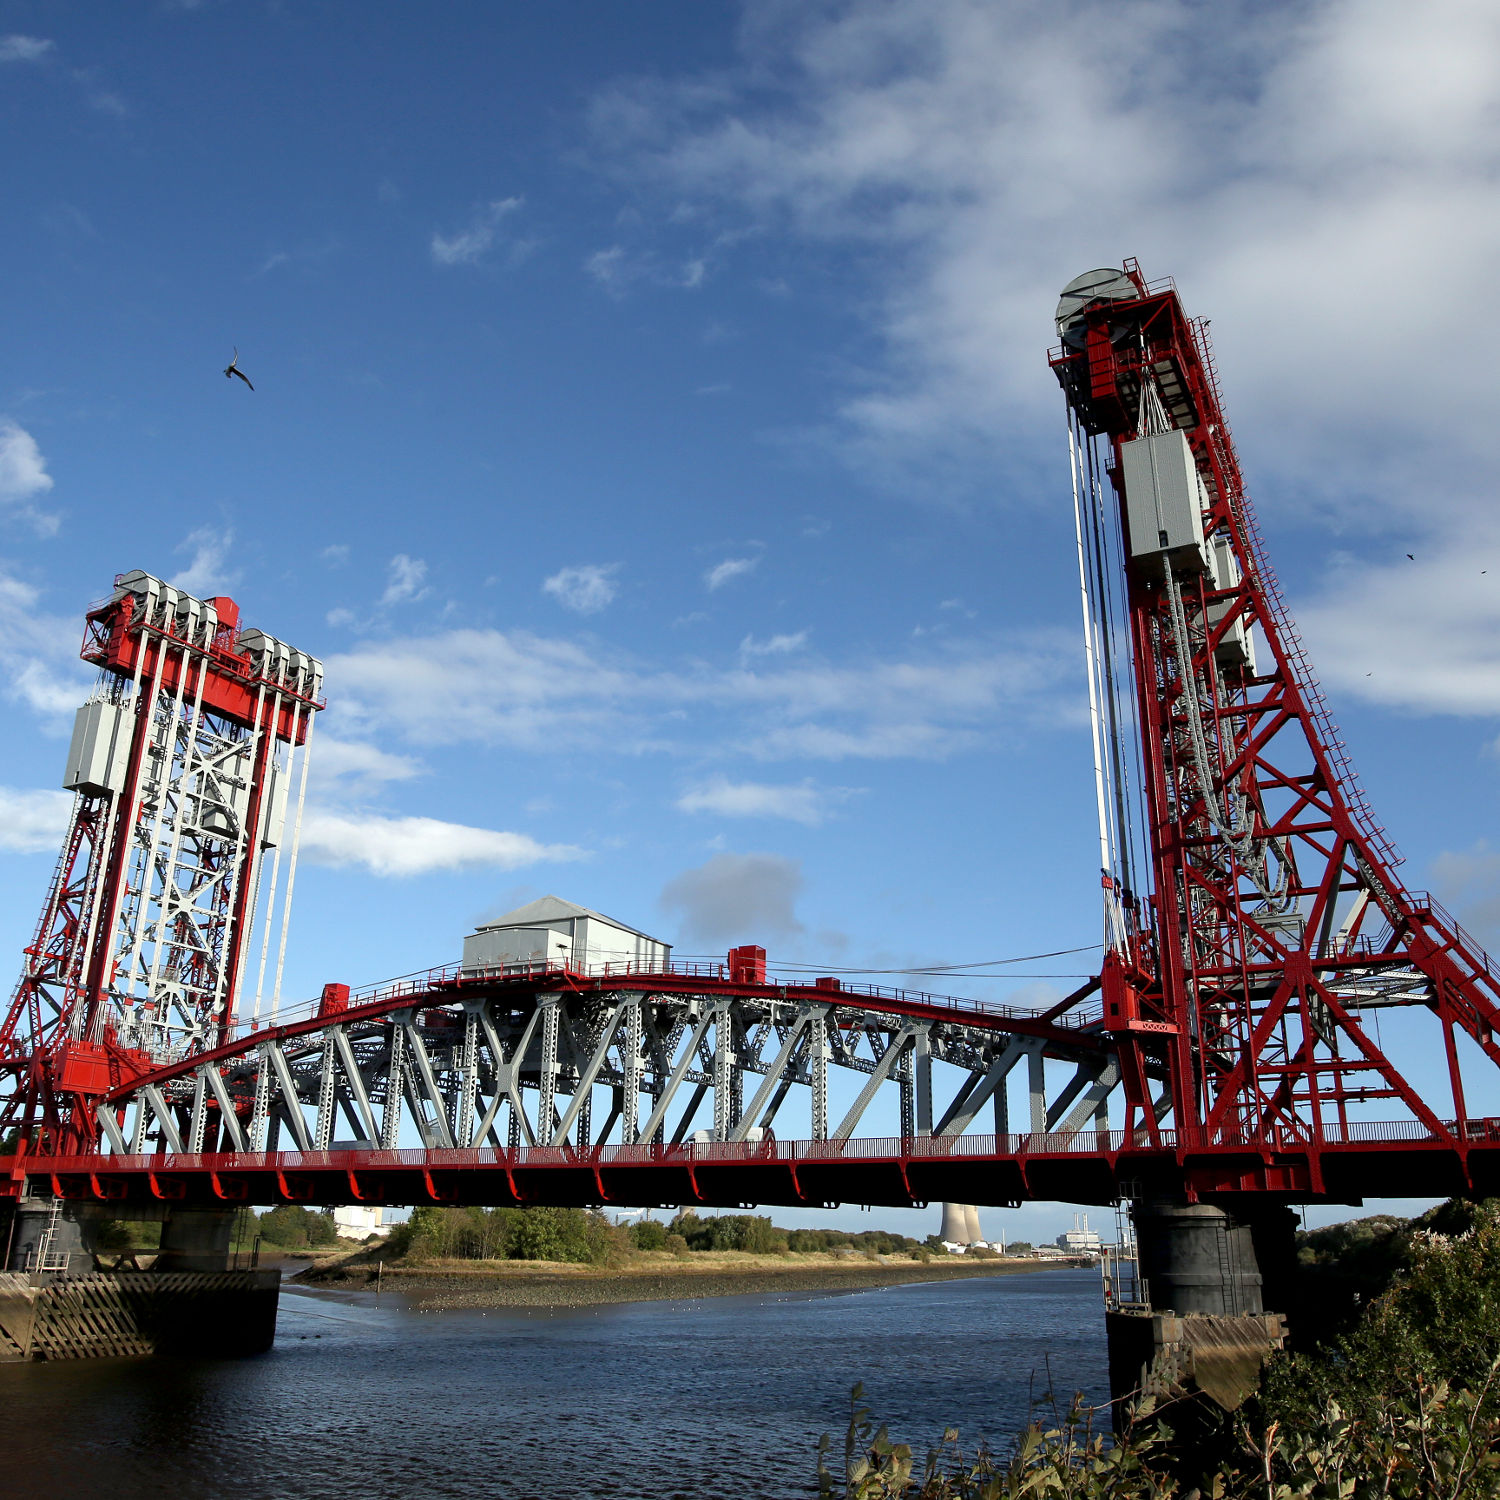 A photo of the Newport Bridge linking to a page about what's happening in Newport